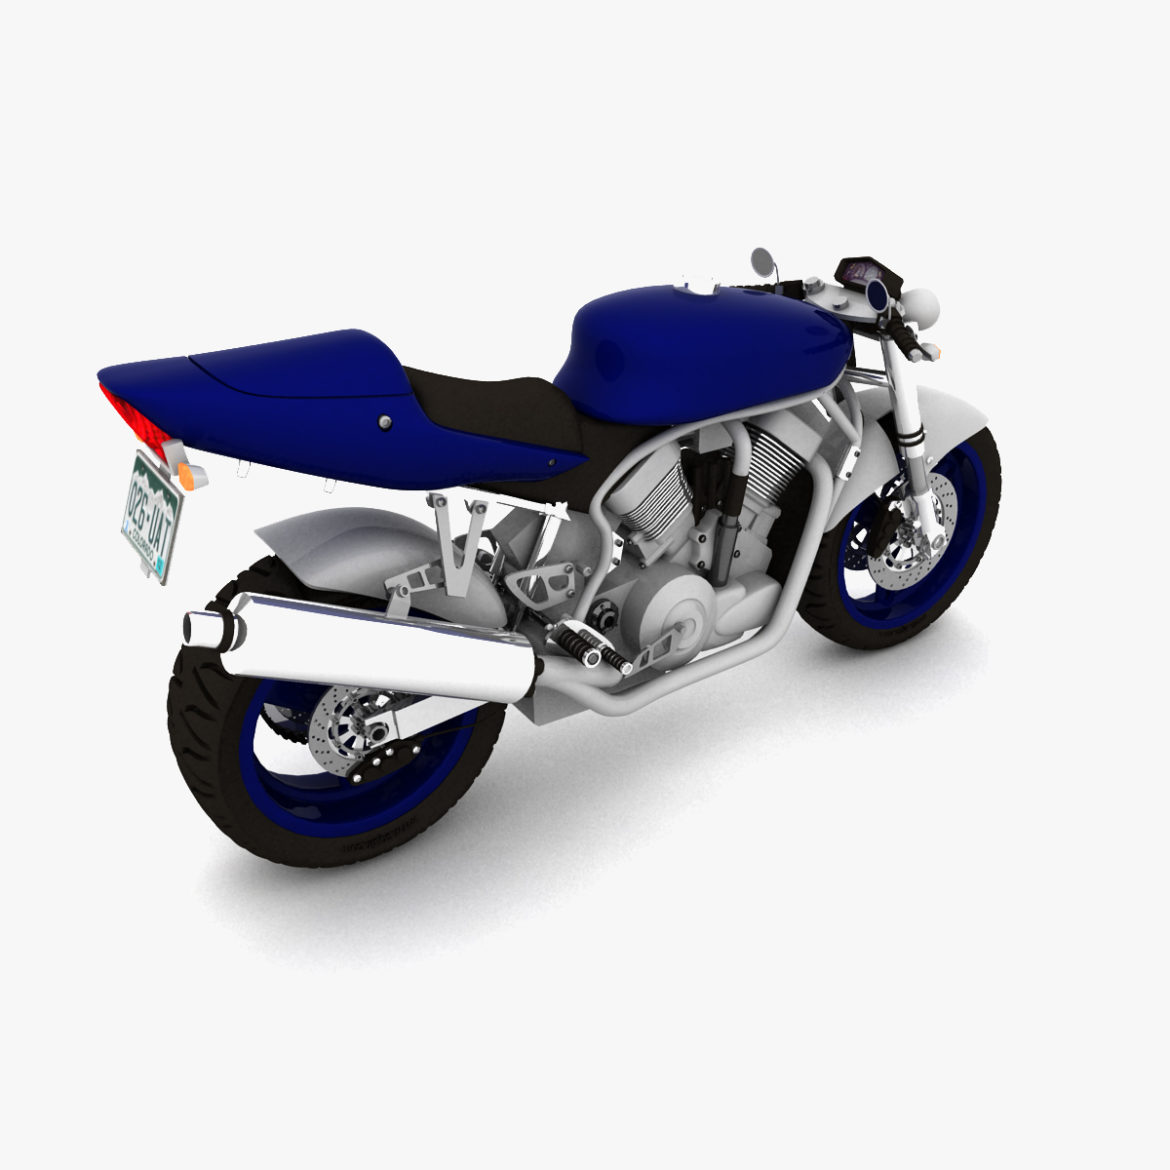 suzuki street fighter motorcycle 3d model 3ds max fbx obj 293871